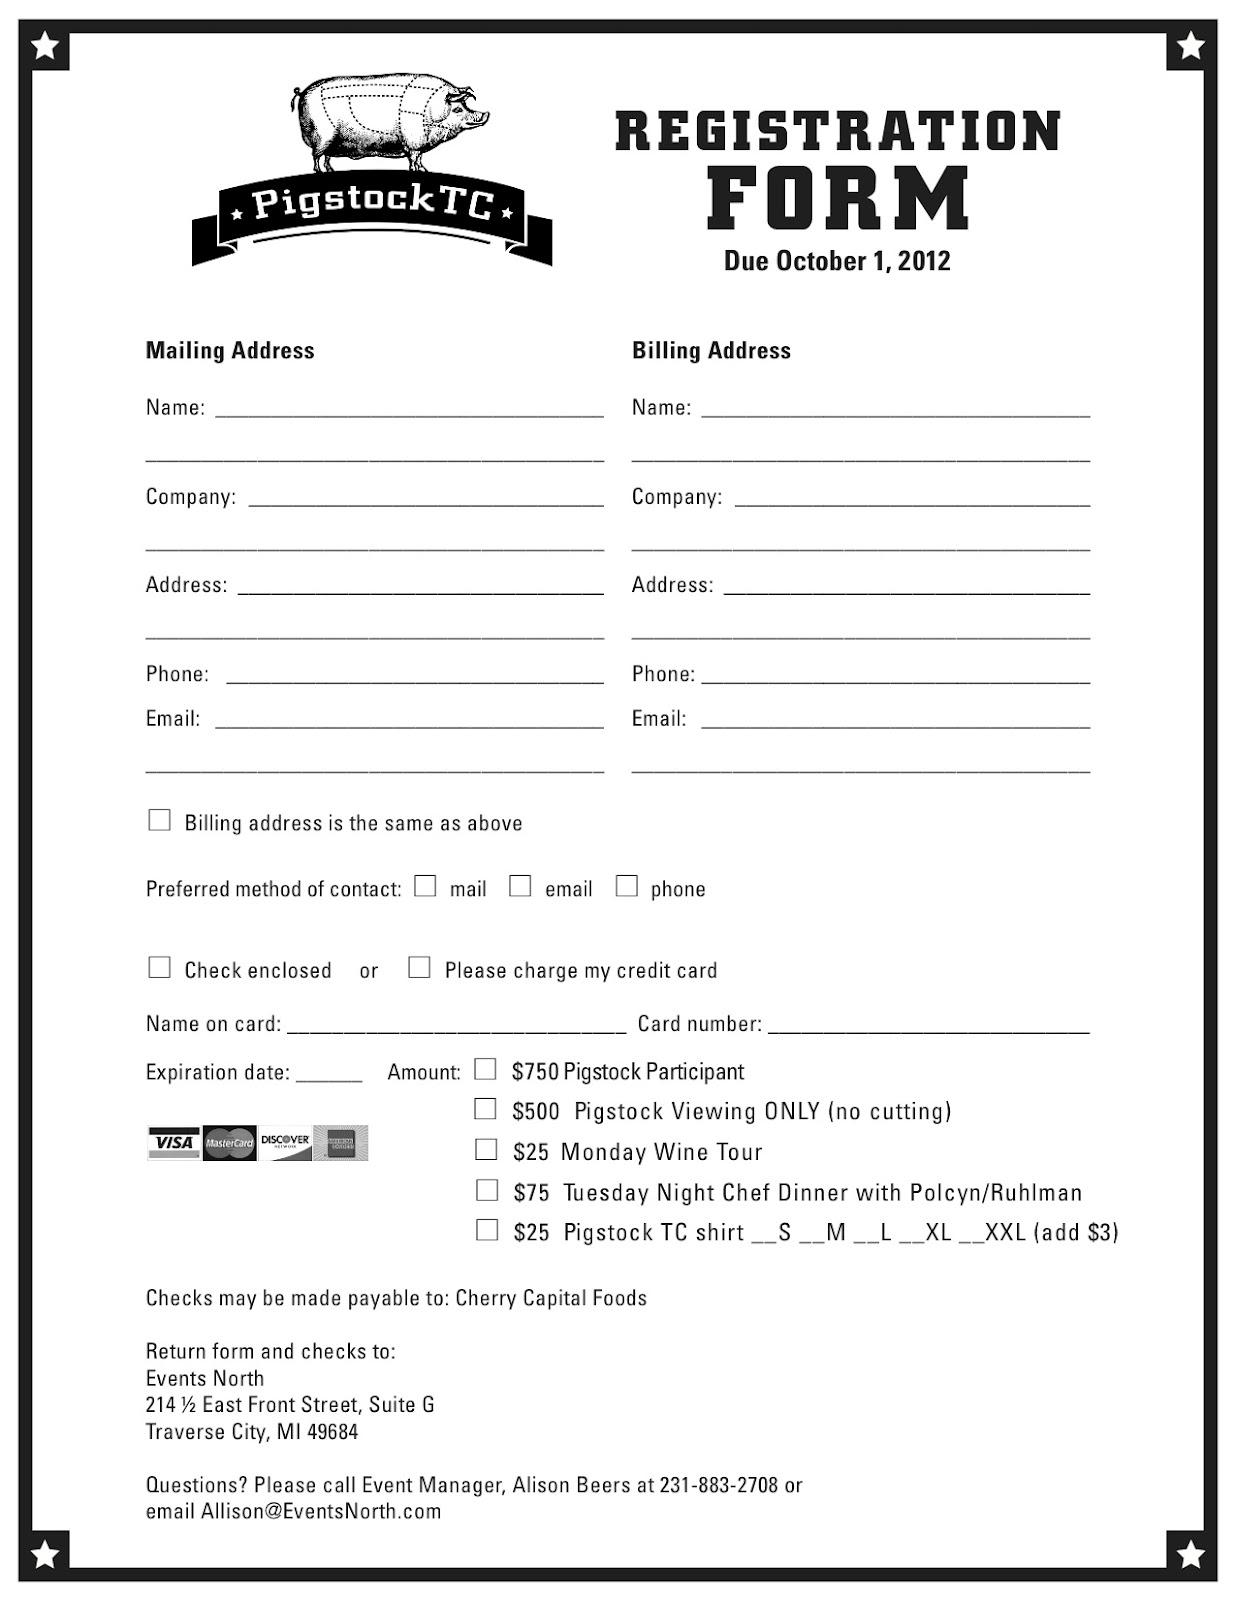 Printable Registration Form Template